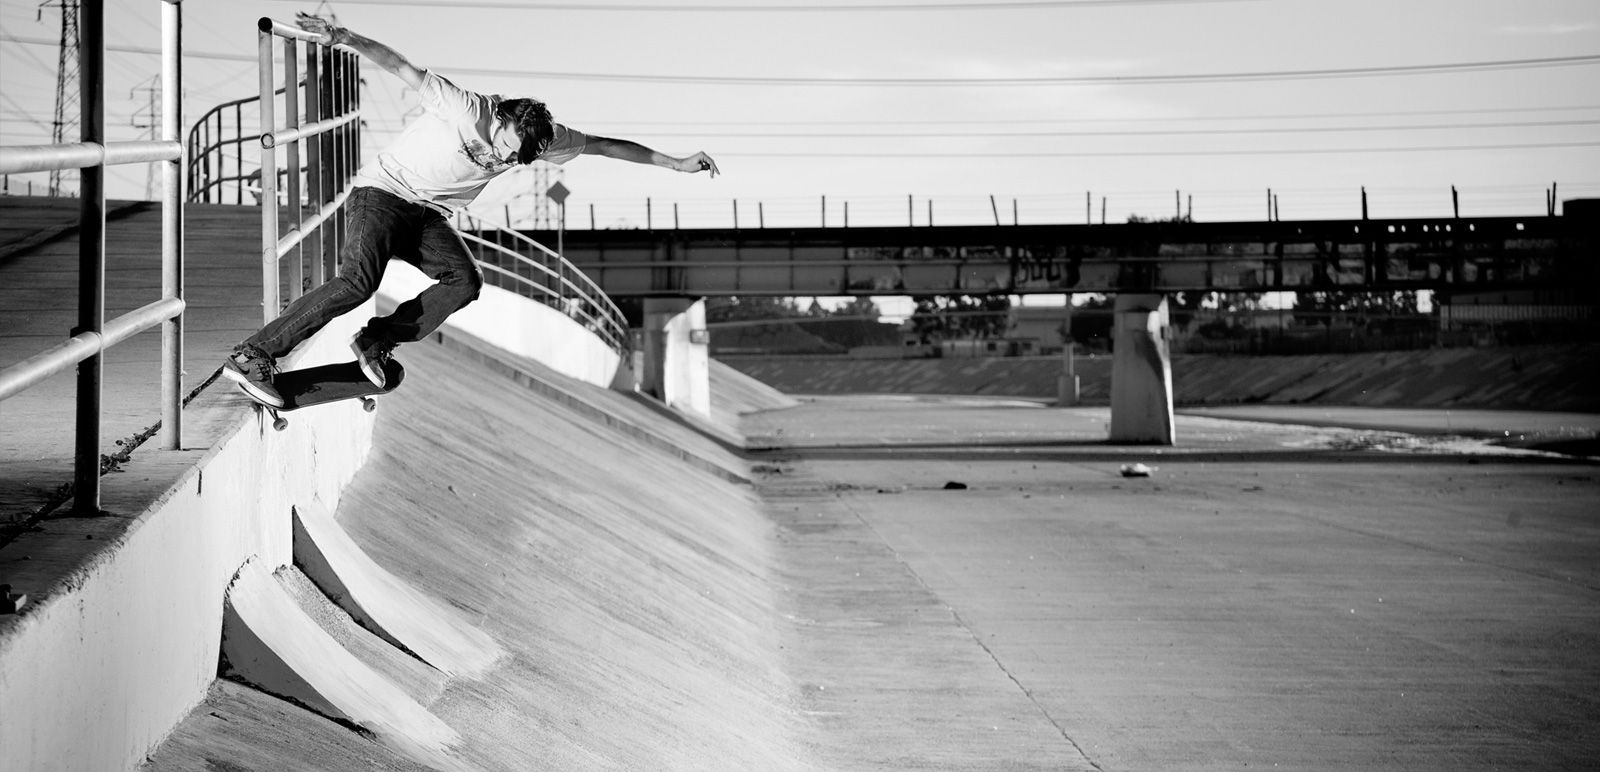 Nike SB rider Stefan Janoski doing a crooked grind.